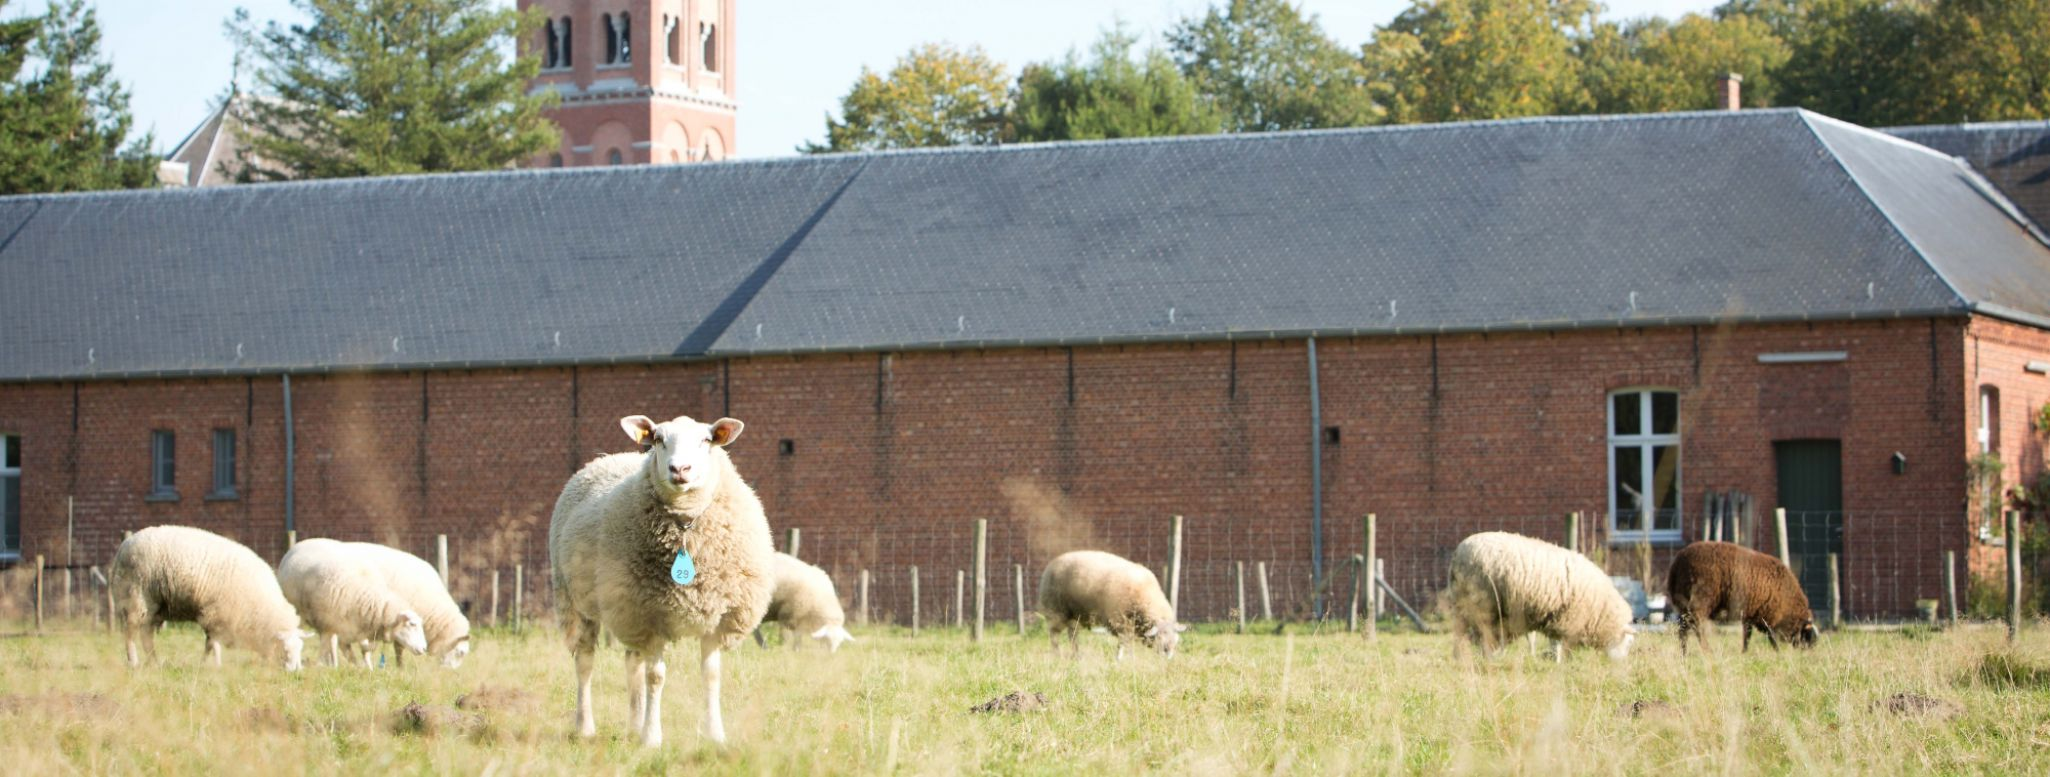 Sheep grazing around Westmalle abbey